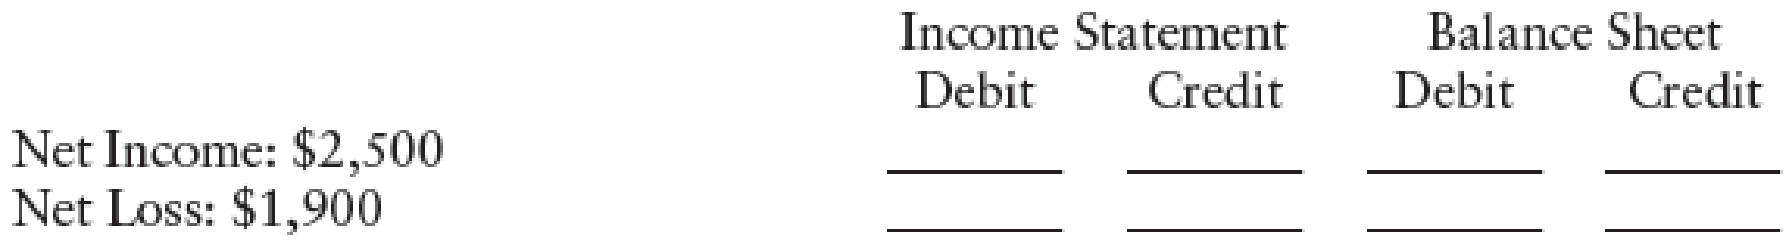 Chapter 5, Problem 12SEB, ANALYSIS OF NET INCOME OR NET LOSS ON THE WORK SHEET Insert the dollar amounts where the net income